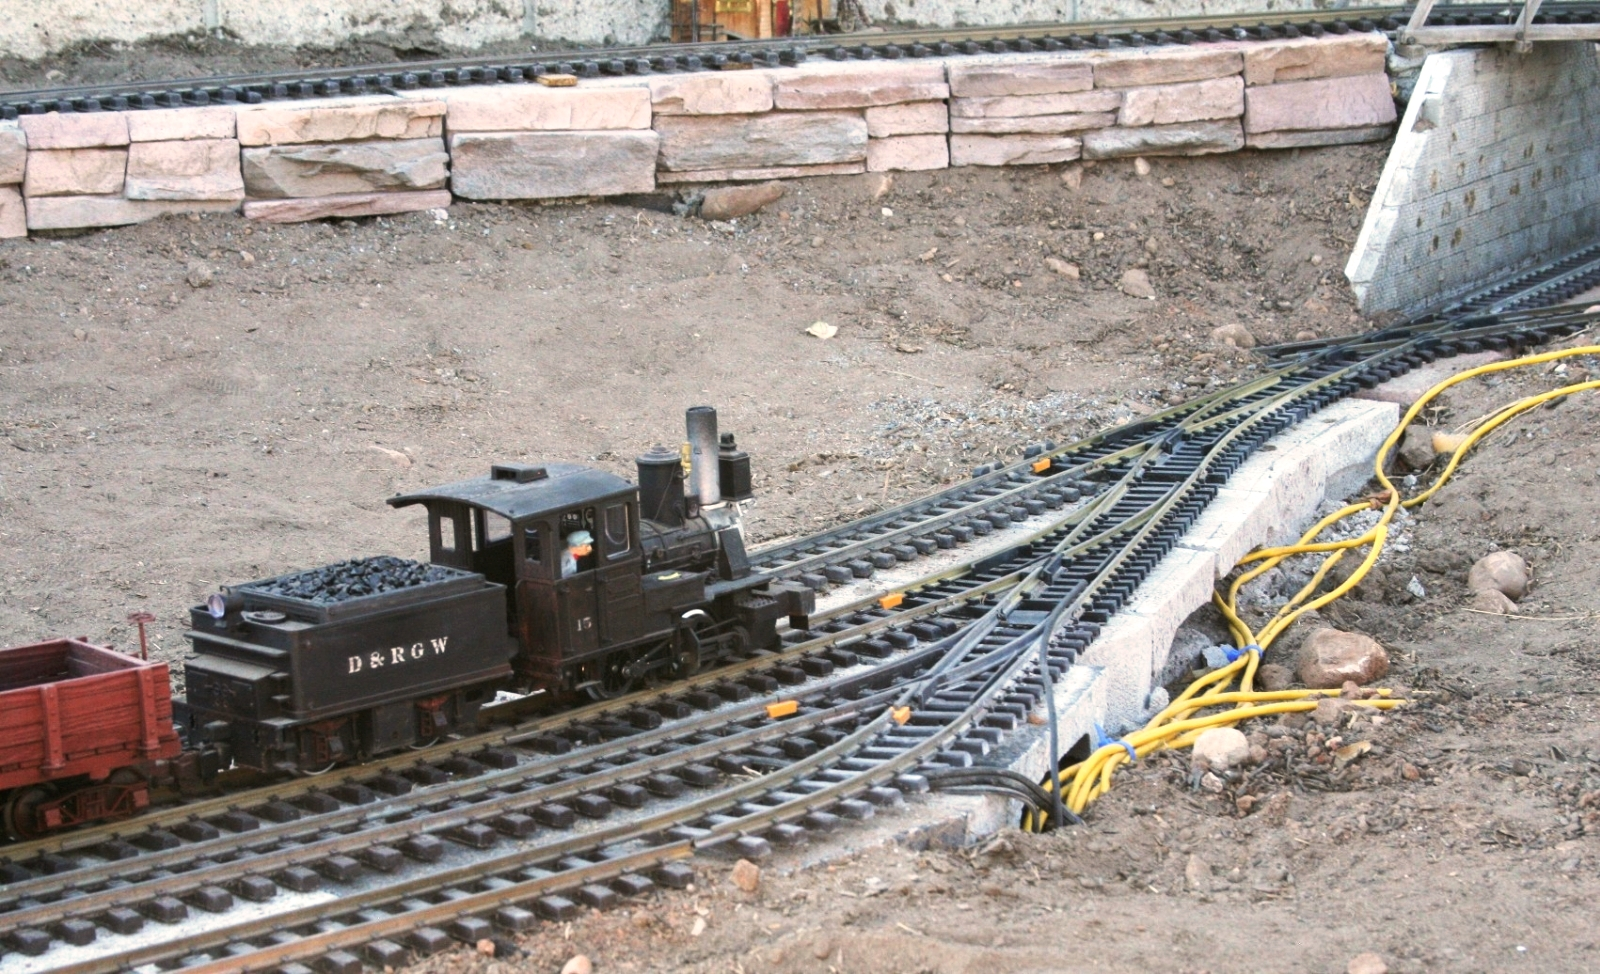 dotson.A steam engine runs smooth on track supported by concrete blocks